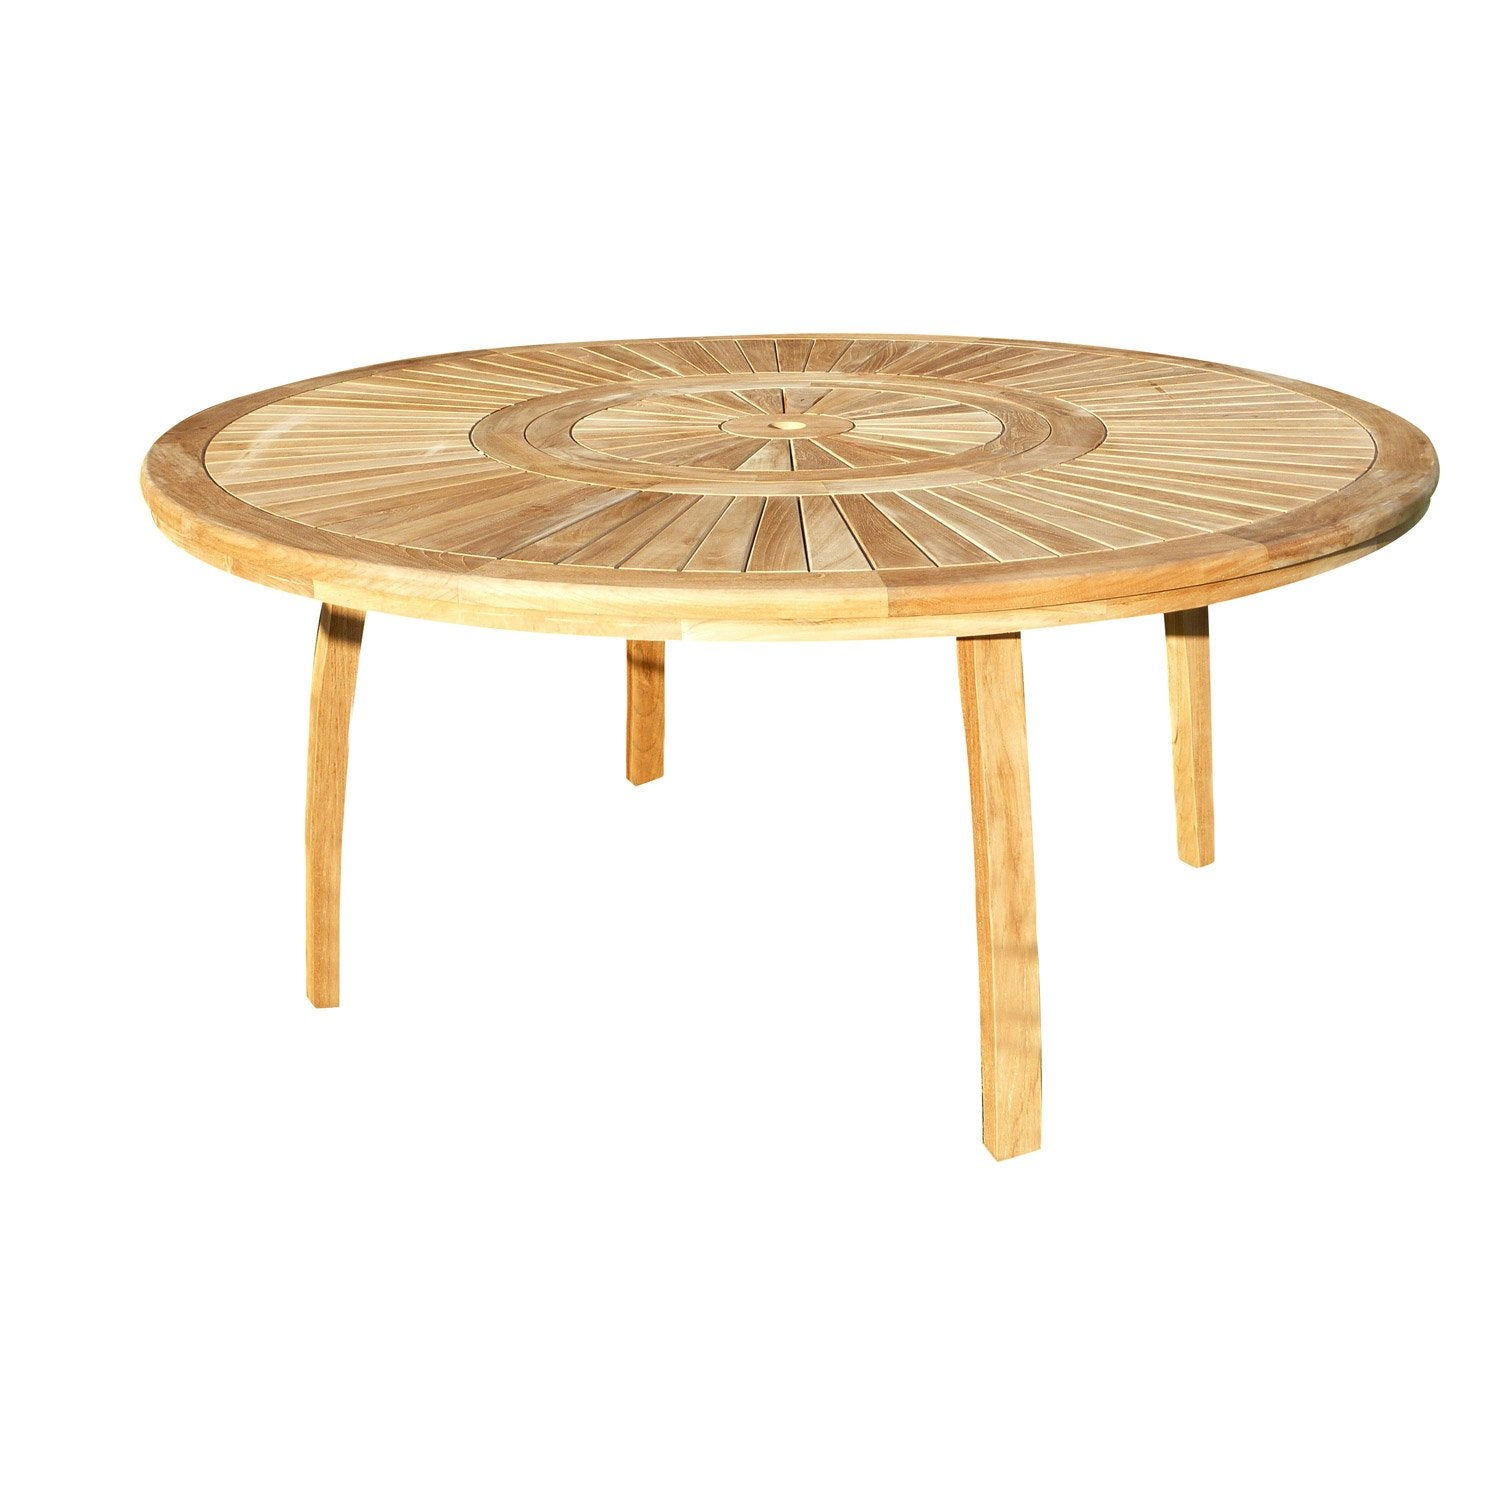 Table de jardin orion ronde naturel 8 personnes leroy merlin for Leclerc exterieur table